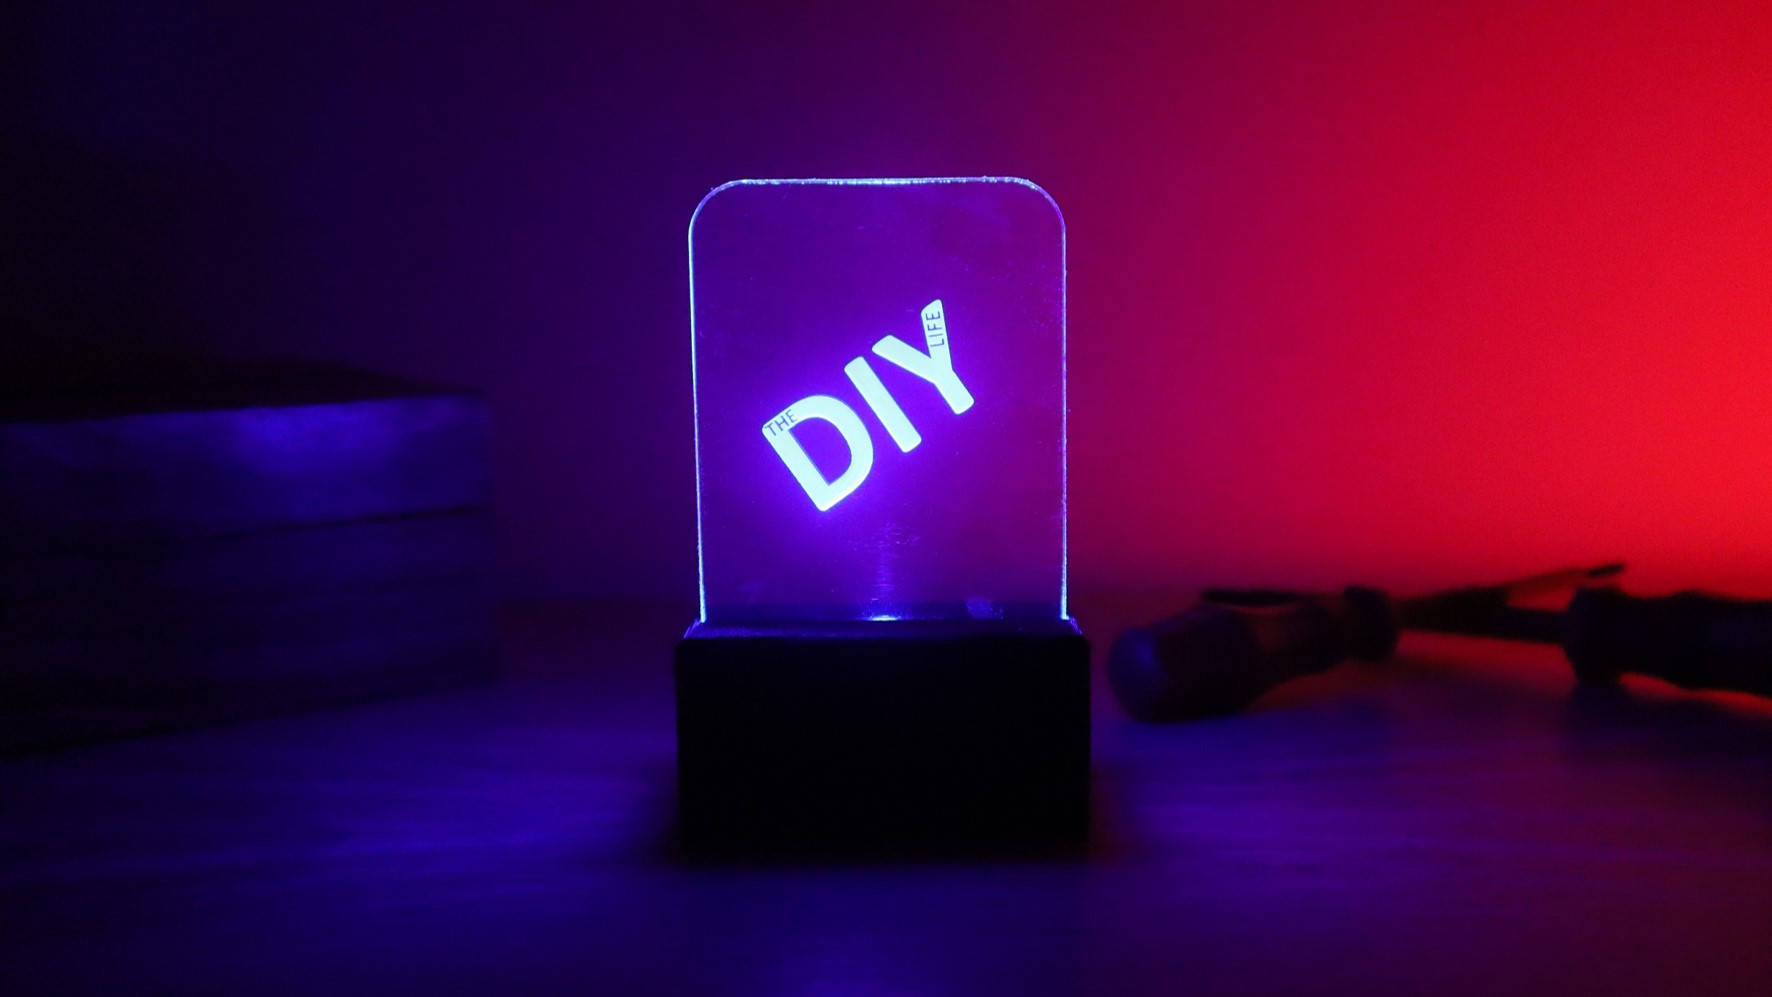 Make Your Own Light-Up Acrylic Signs For under $5